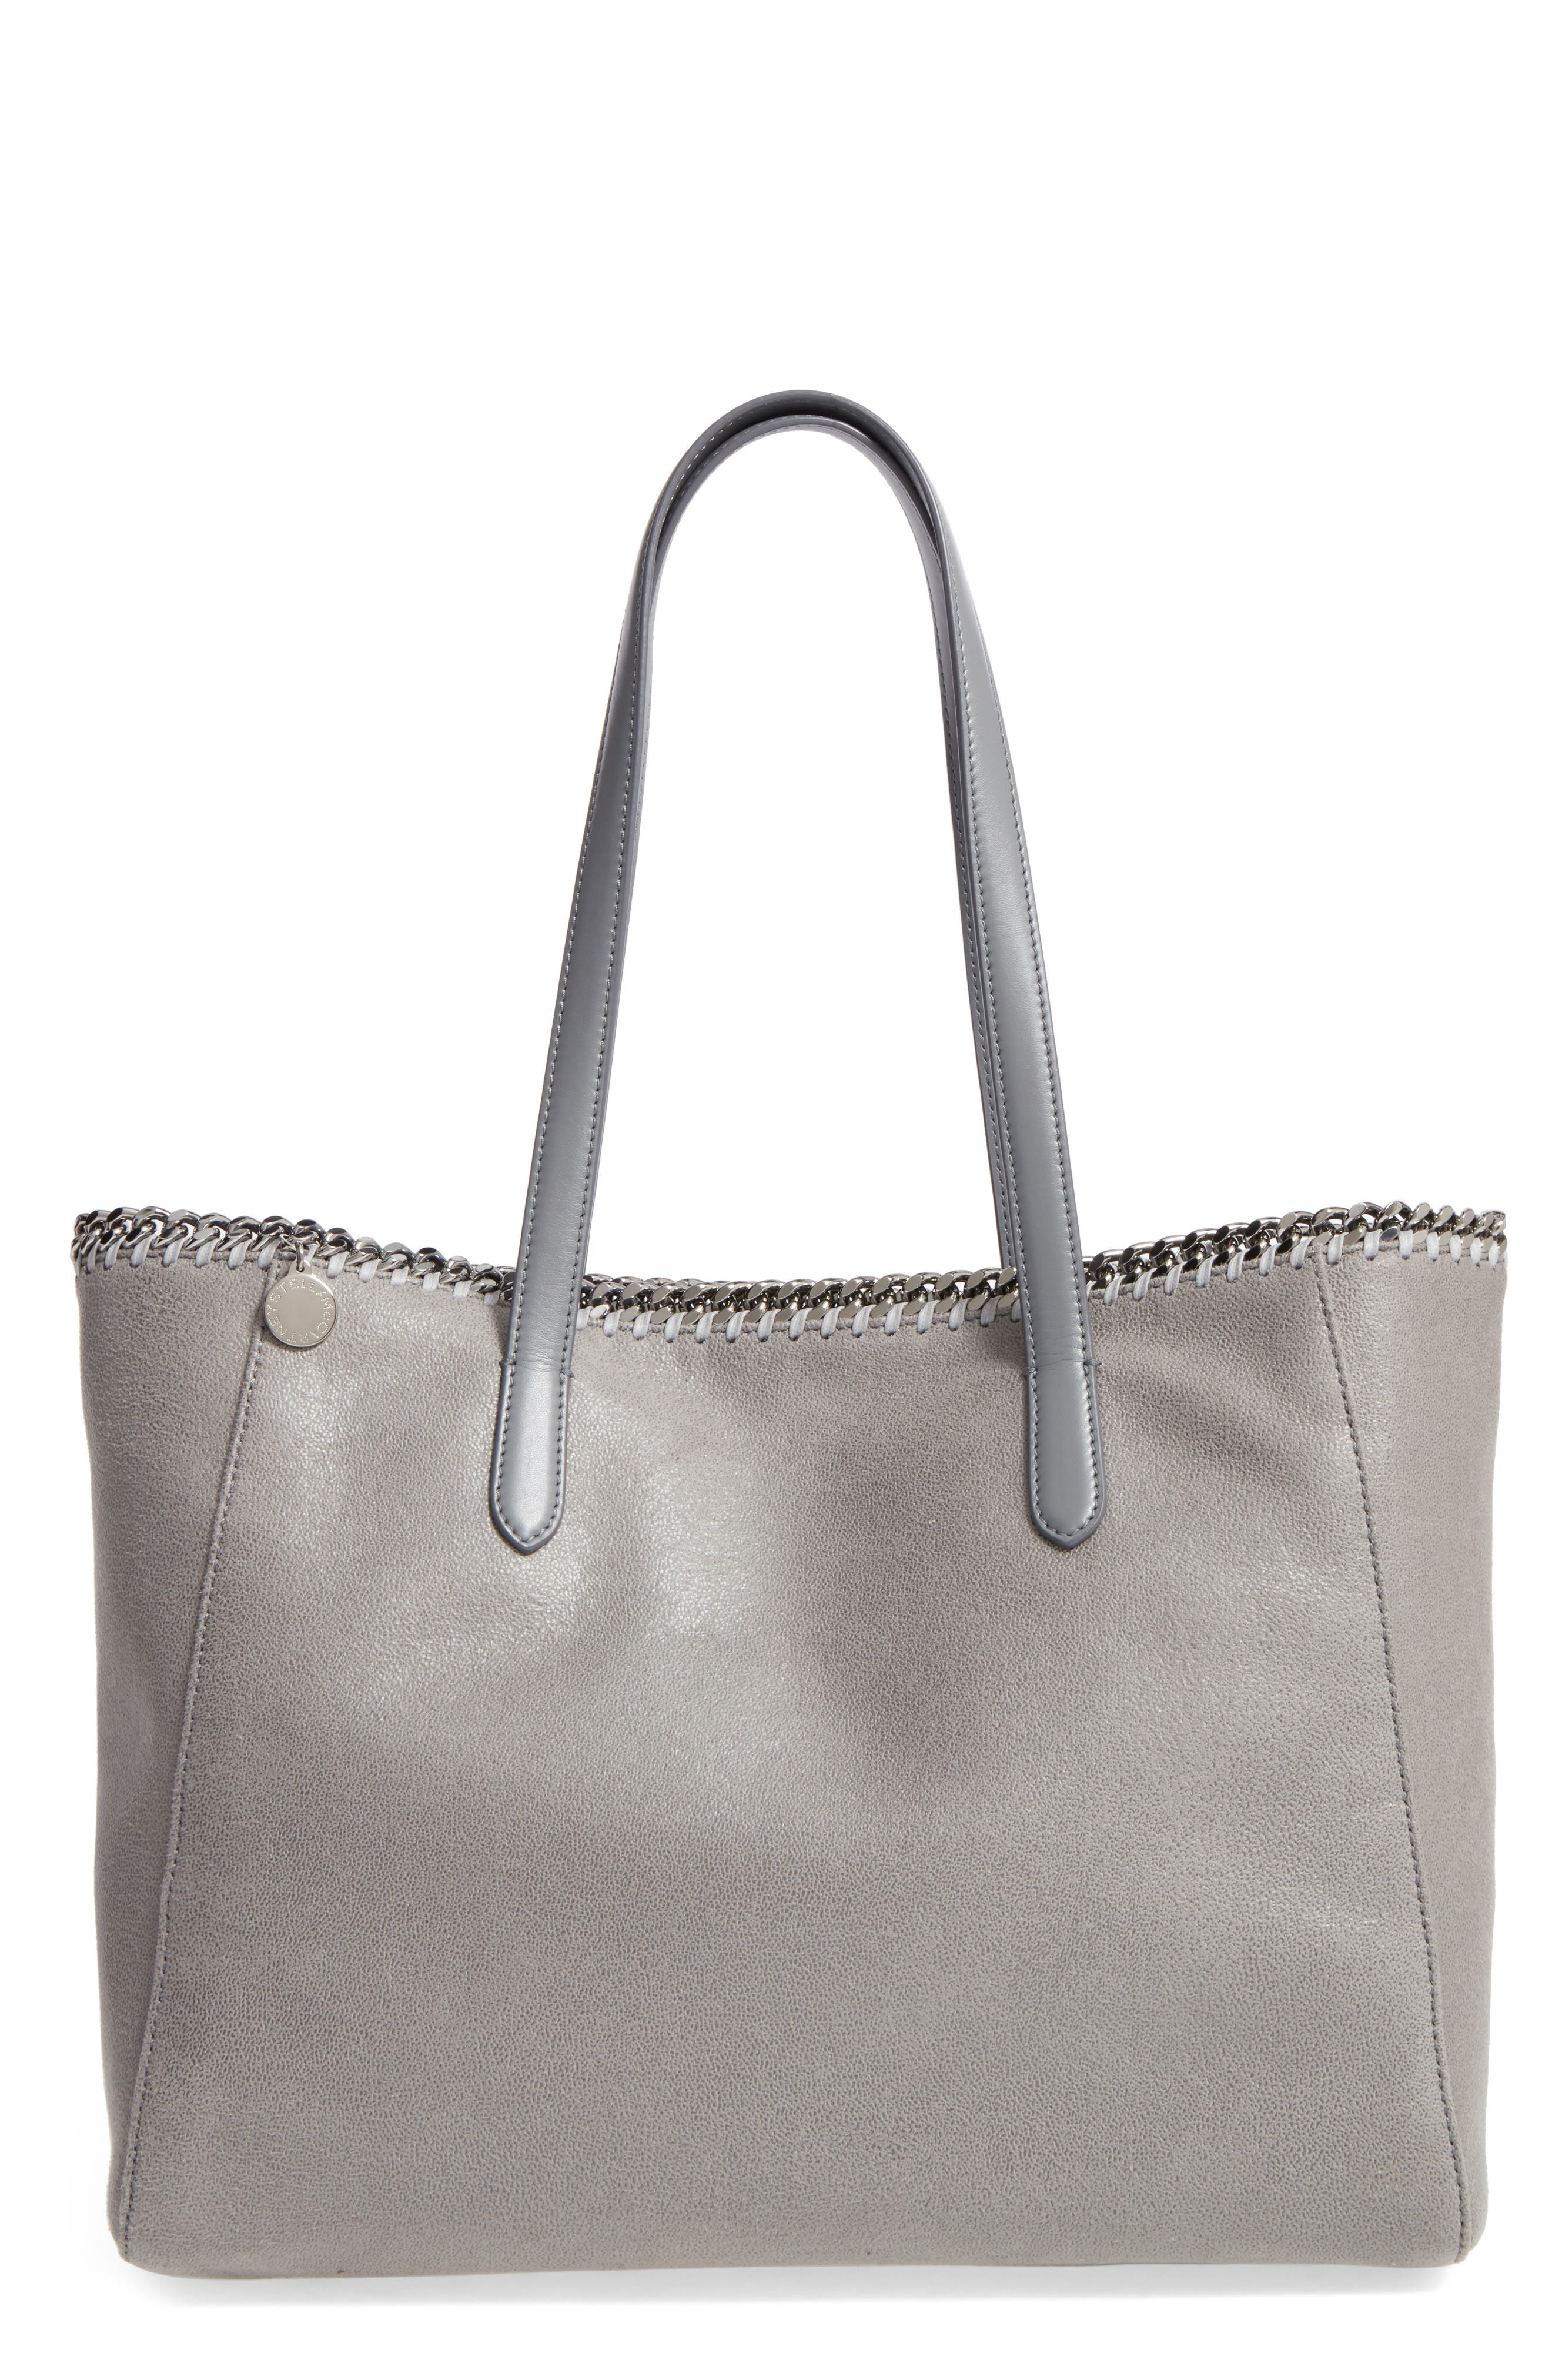 'Falabella - Shaggy Deer' Faux Leather Tote,                         Main,                         color, Light Grey